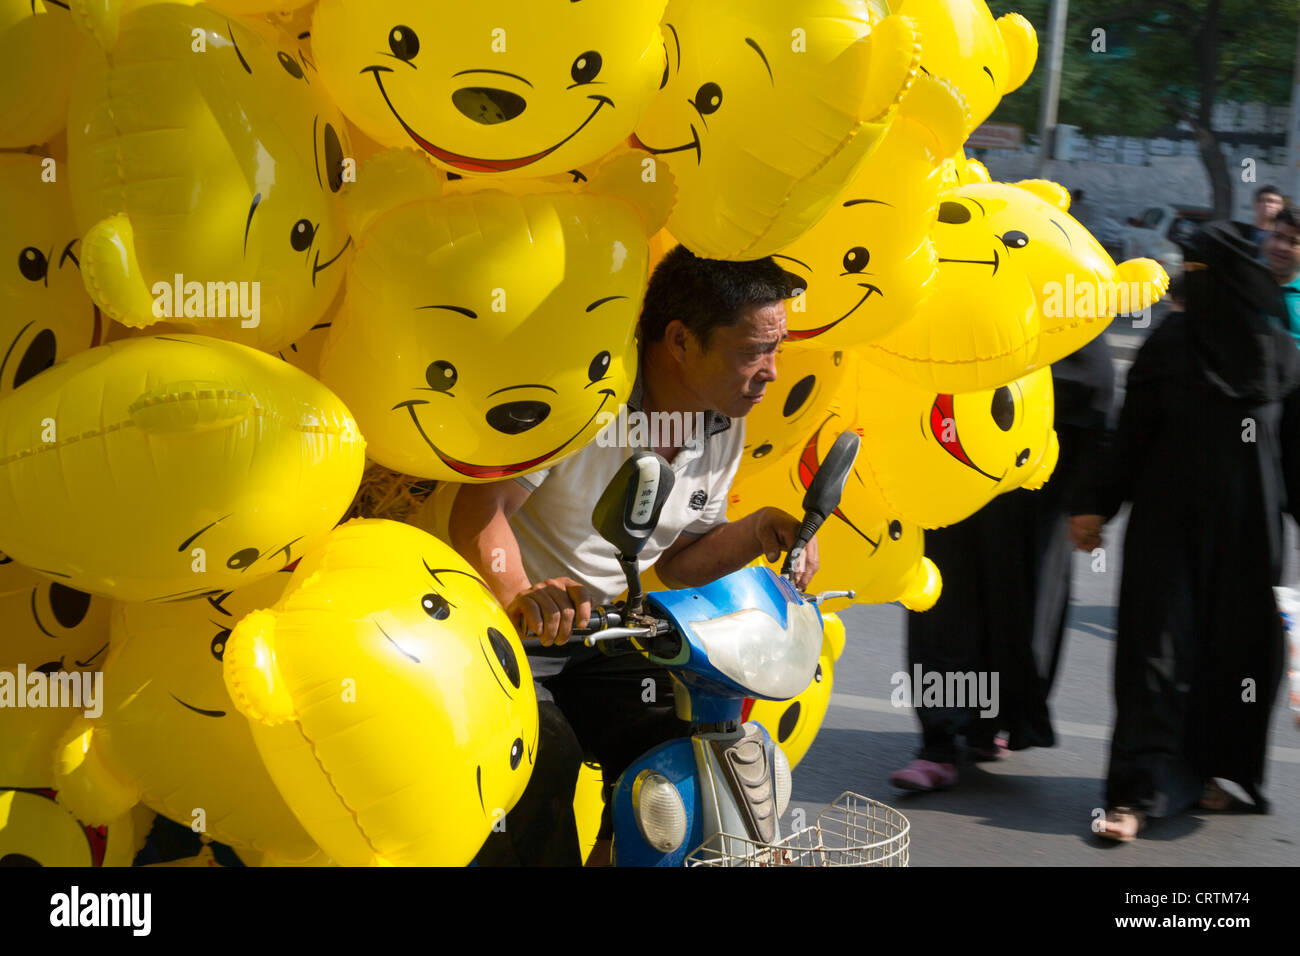 Man with Winnie The Pooh balloons, in the Sanlitun upmarket shopping district, in Beijing, China. - Stock Image